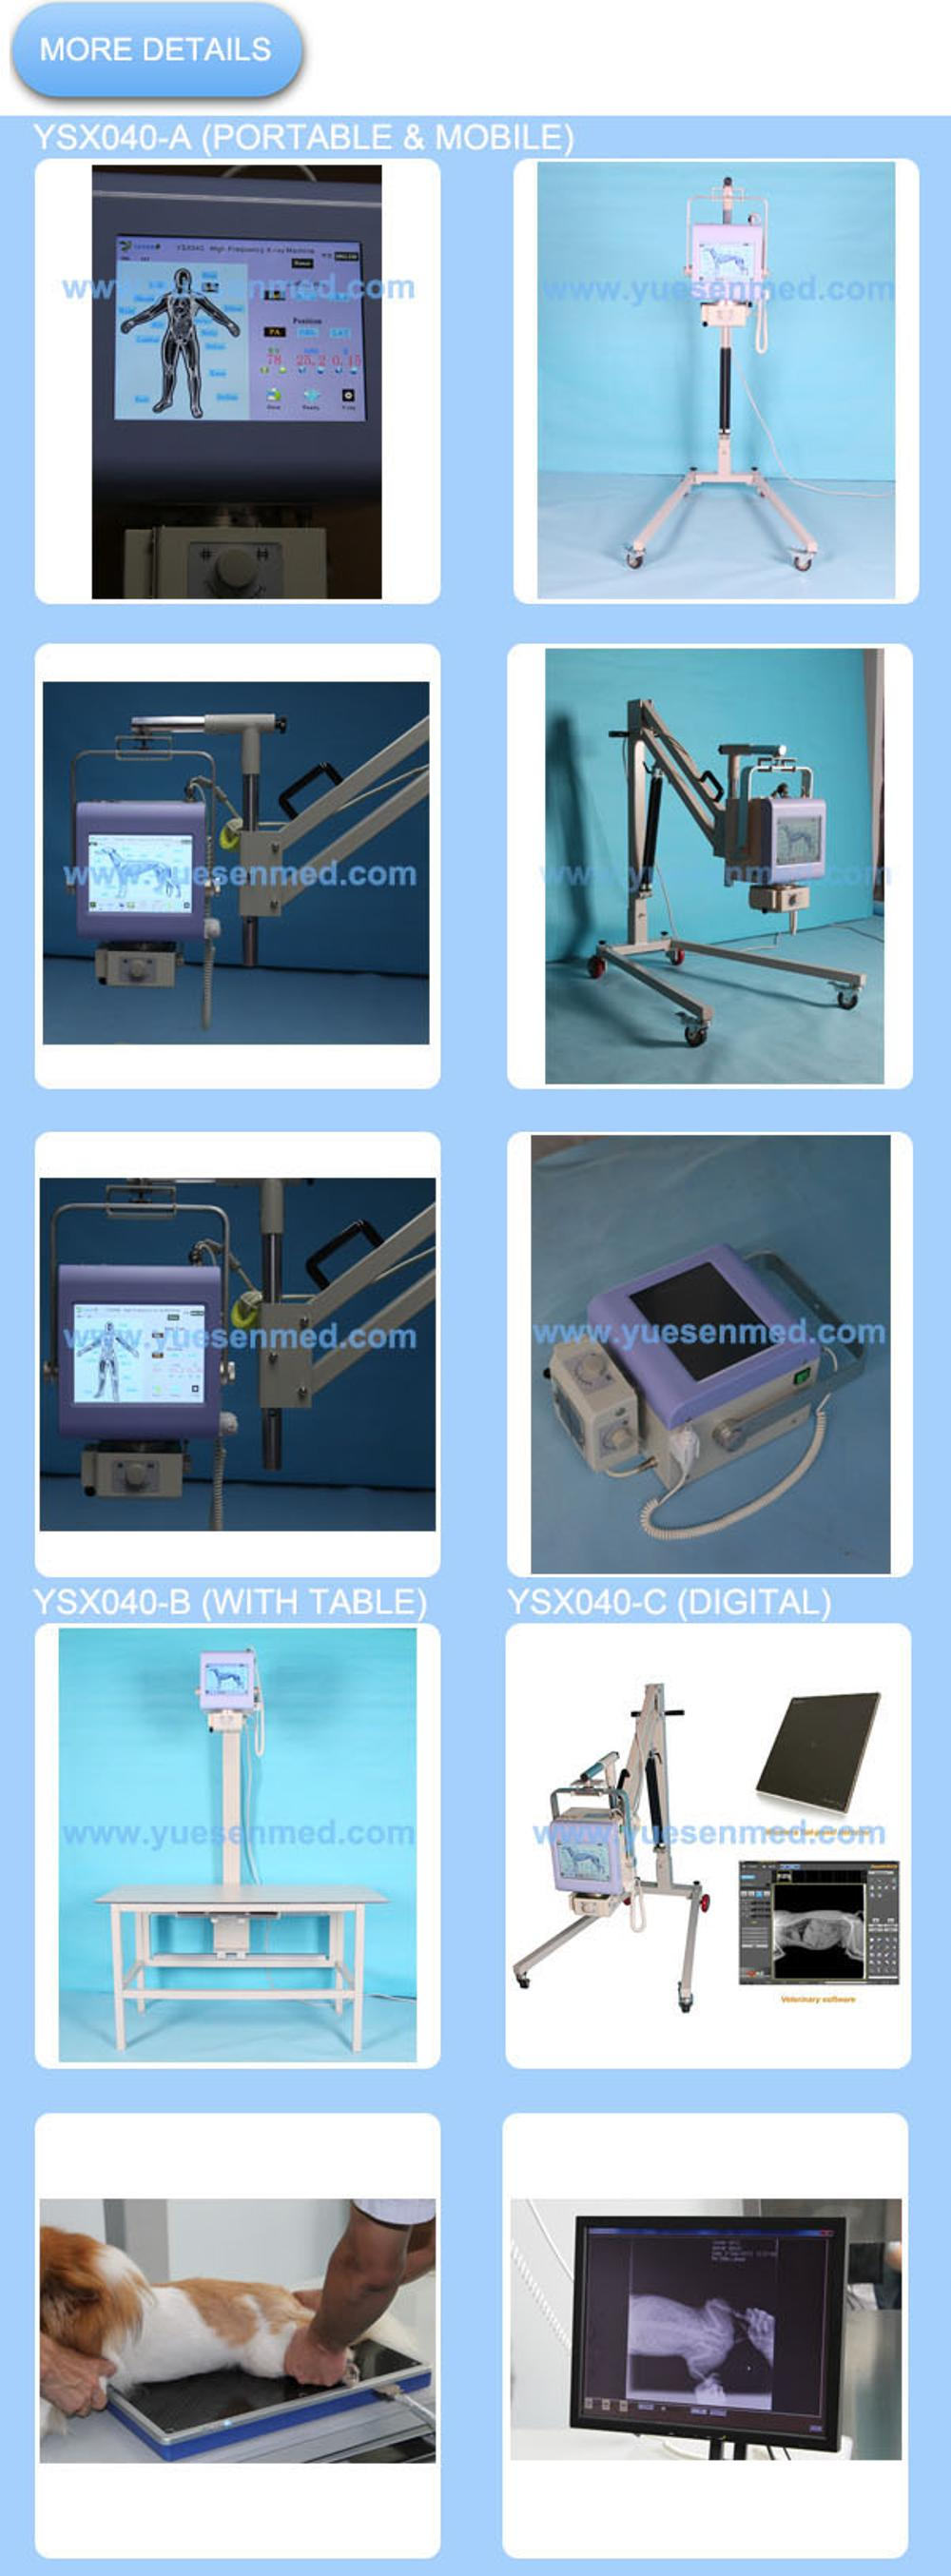 DR detector 4KW Mobile stand Digital Portable Veterinary x-ray machine With Laptop software YSX040-C